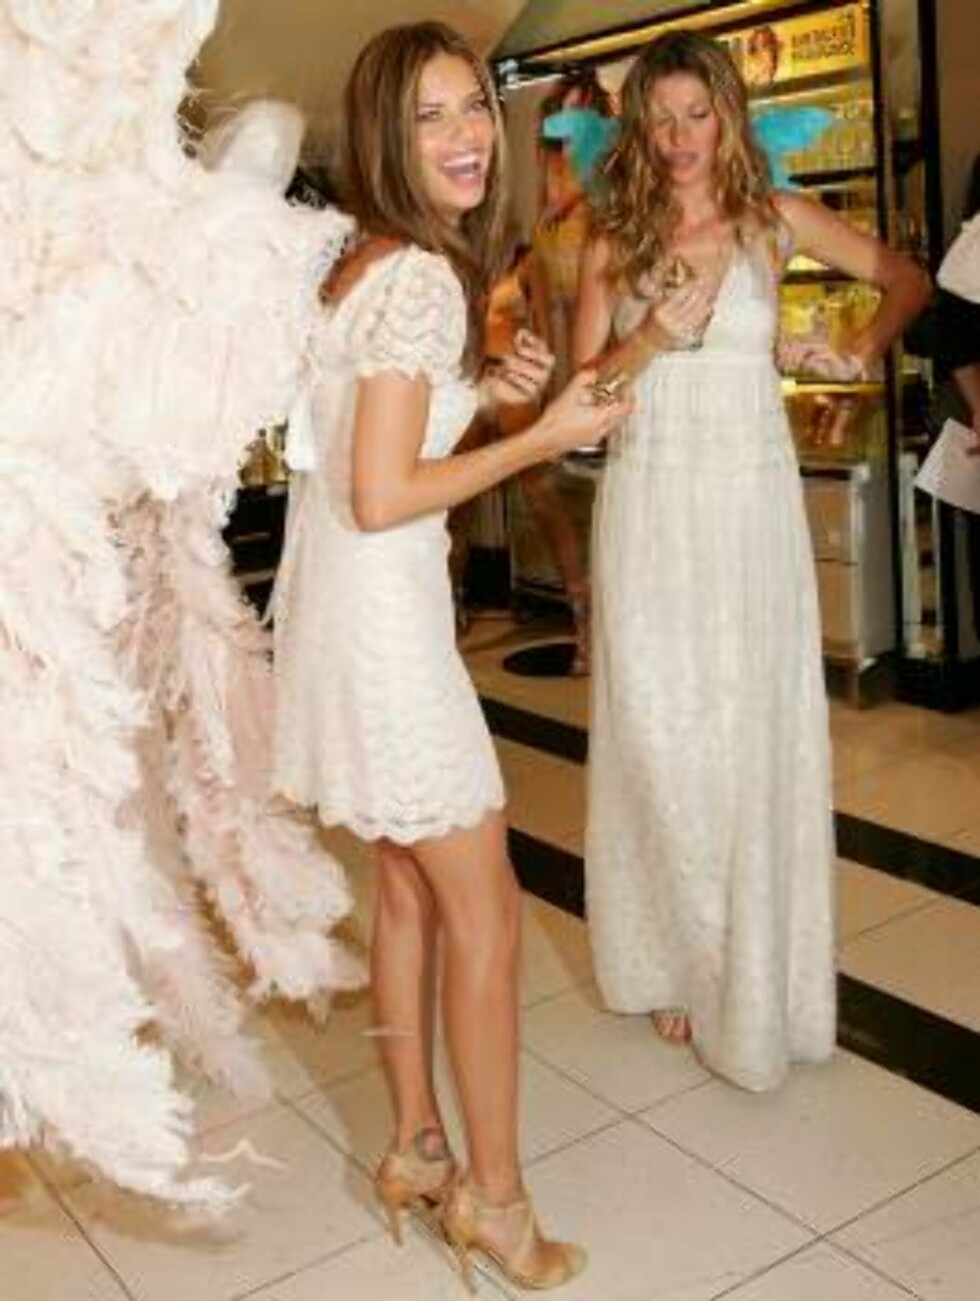 """NEW YORK - MAY 10:  Victoria's Secret models Adriana Lima and Gisele Bundchen unveil """"Dream Angels Heavenly"""" fragrance wearing self designed wings at Victoria's Secret Herald Square May 10, 2006 in New York City.  (Photo by Evan Agostini/Getty Images) *** Foto: All Over Press"""